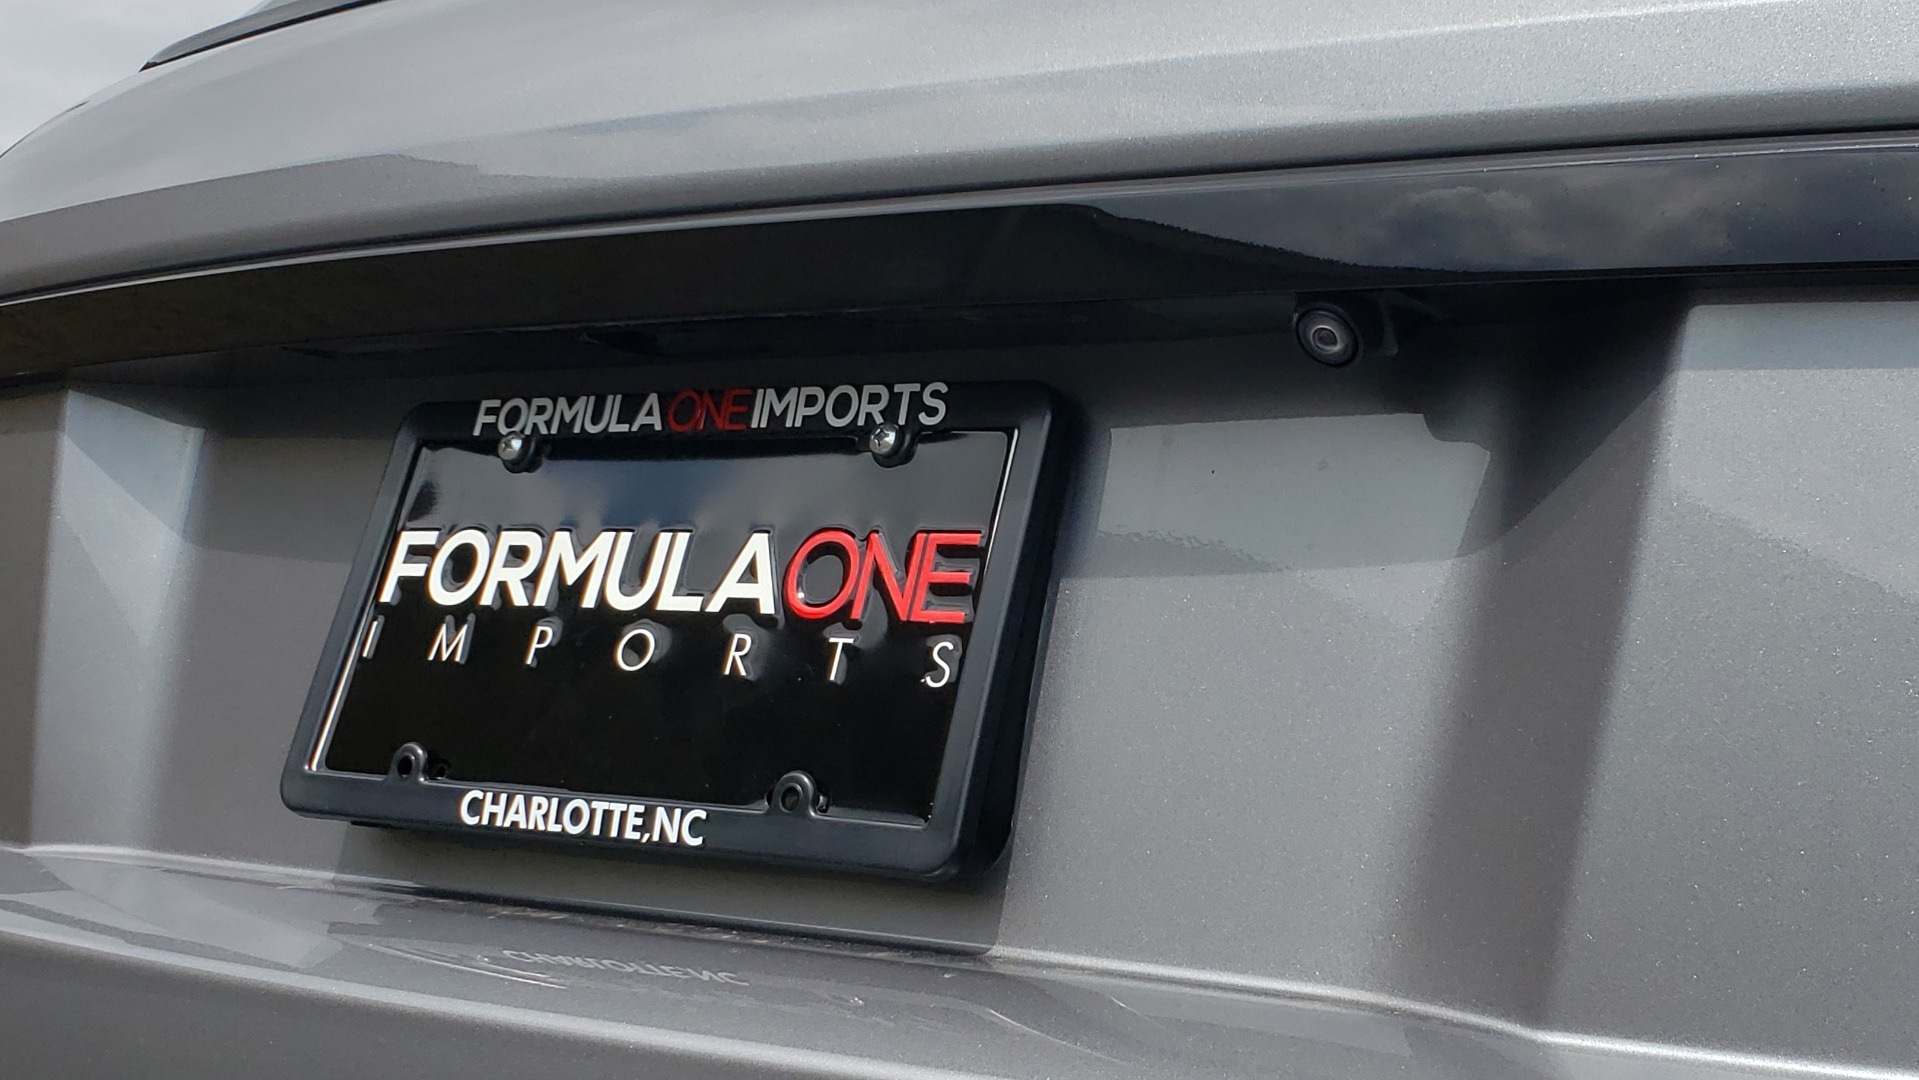 Used 2013 Land Rover RANGE ROVER EVOQUE DYNAMIC PREMIUM / NAV / PANO-ROOF / BLIND SPOT / REARVIEW for sale Sold at Formula Imports in Charlotte NC 28227 36